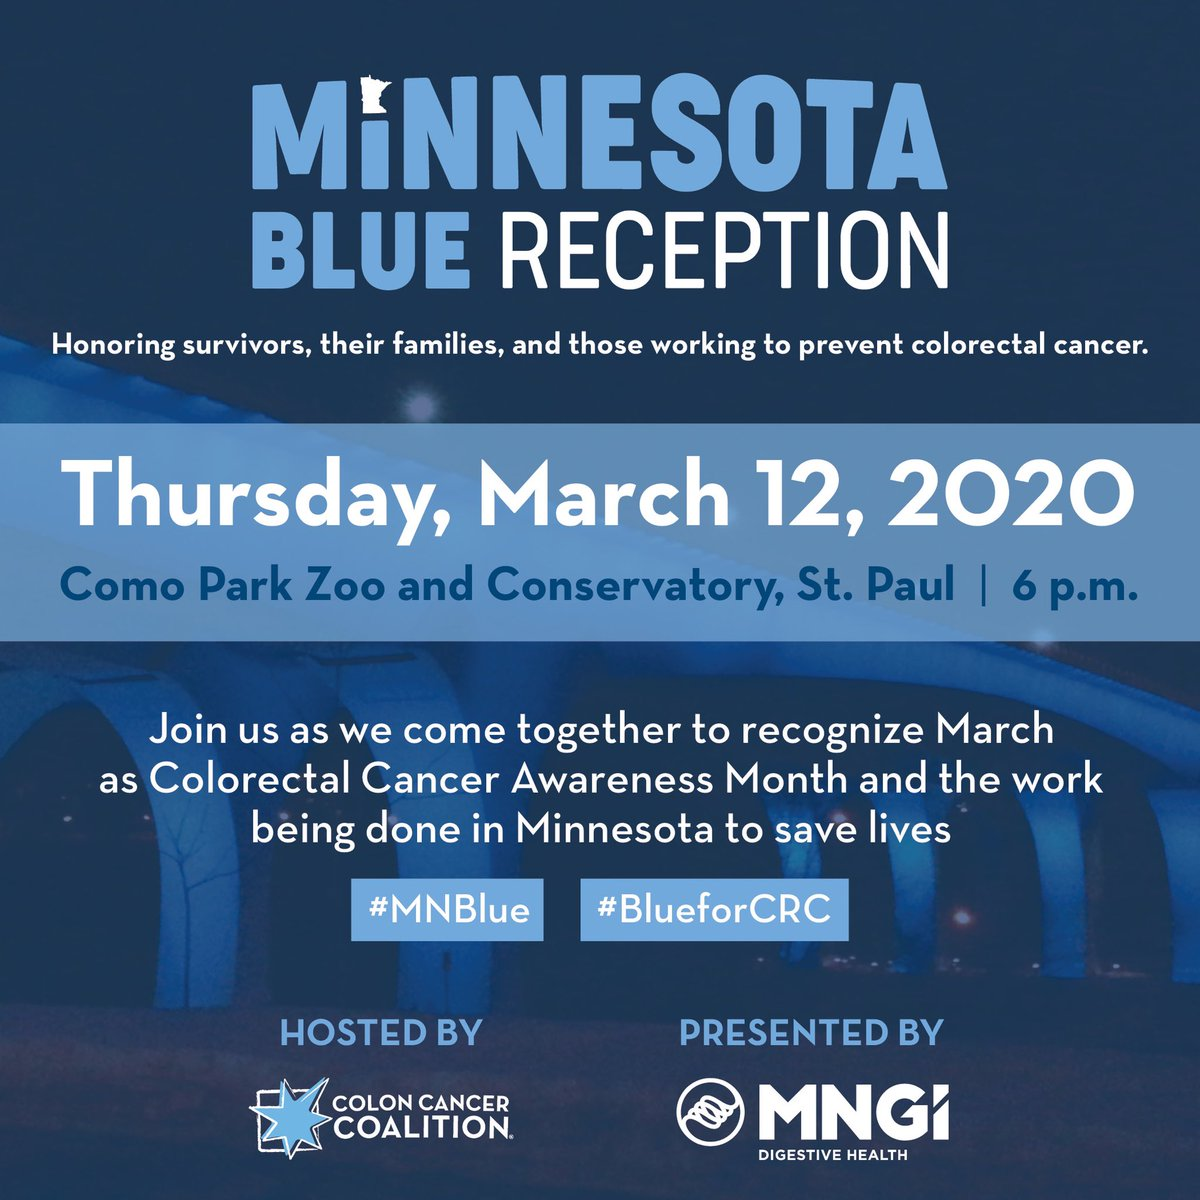 Colon Cancer Coalition On Twitter Twin Cities Save The Date For Our Annual Mn Blue Reception March 12 2020 Mnblue Blueforcrc Mngihealth Https T Co Ddbexmeorh Https T Co Zgd0rpla2j